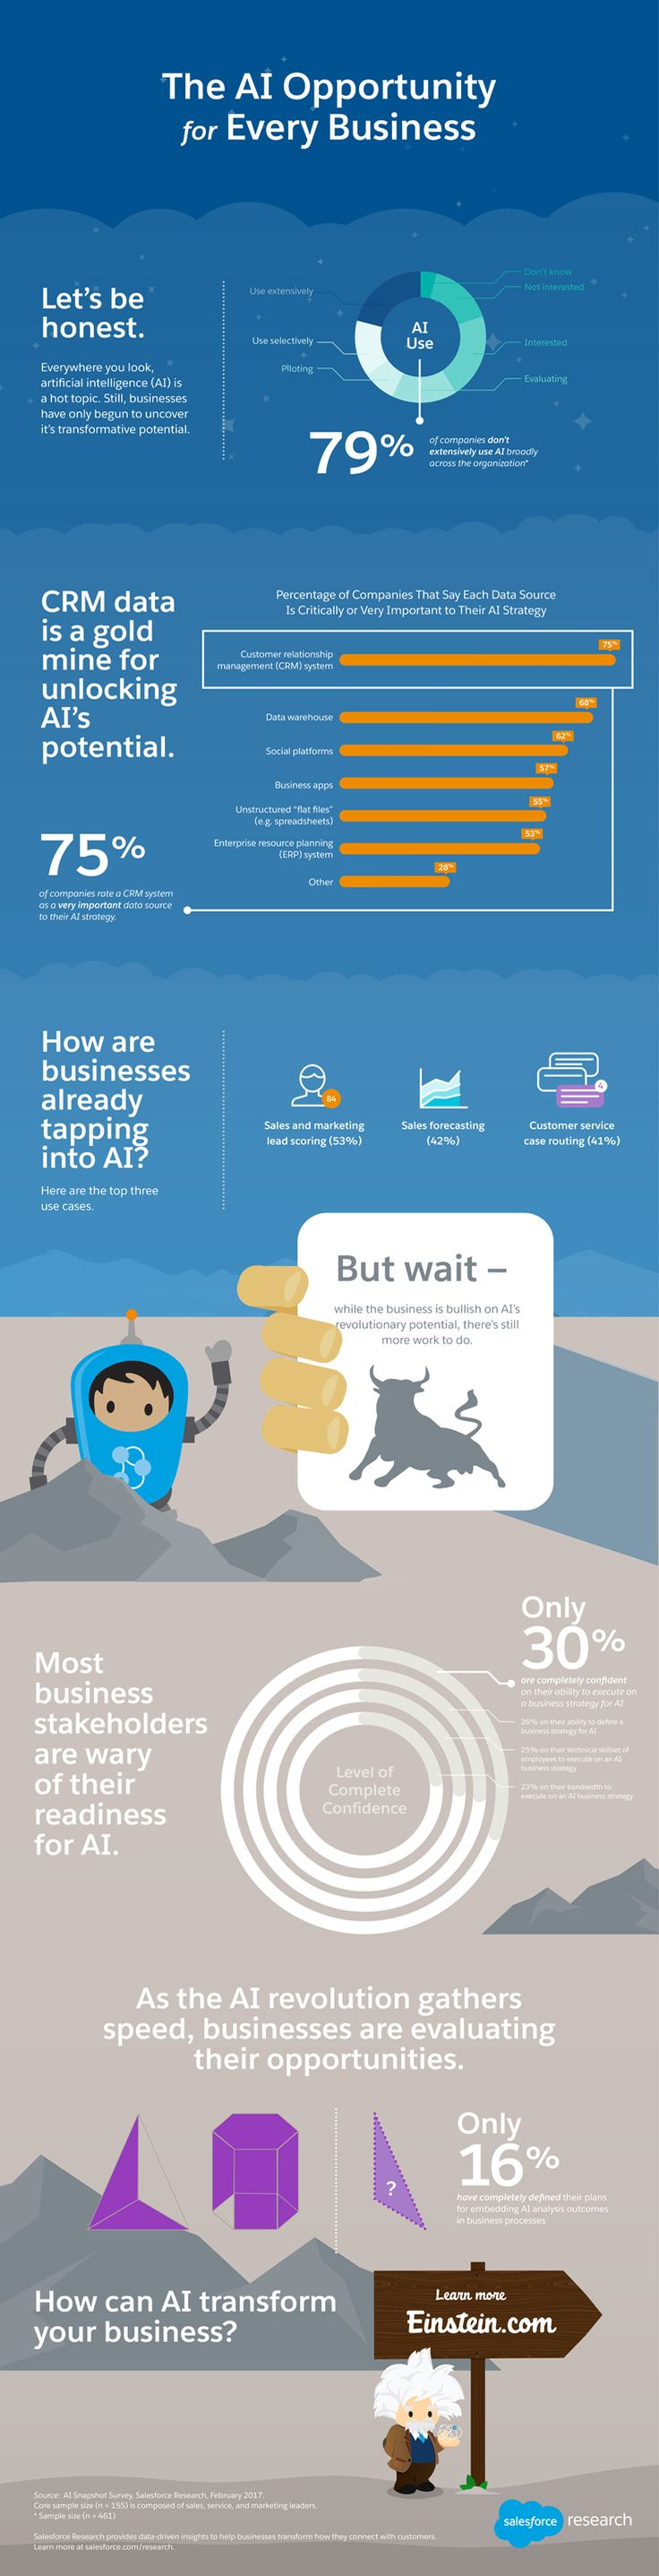 The AI Revolution: Opportunities for Every Business - Infographic